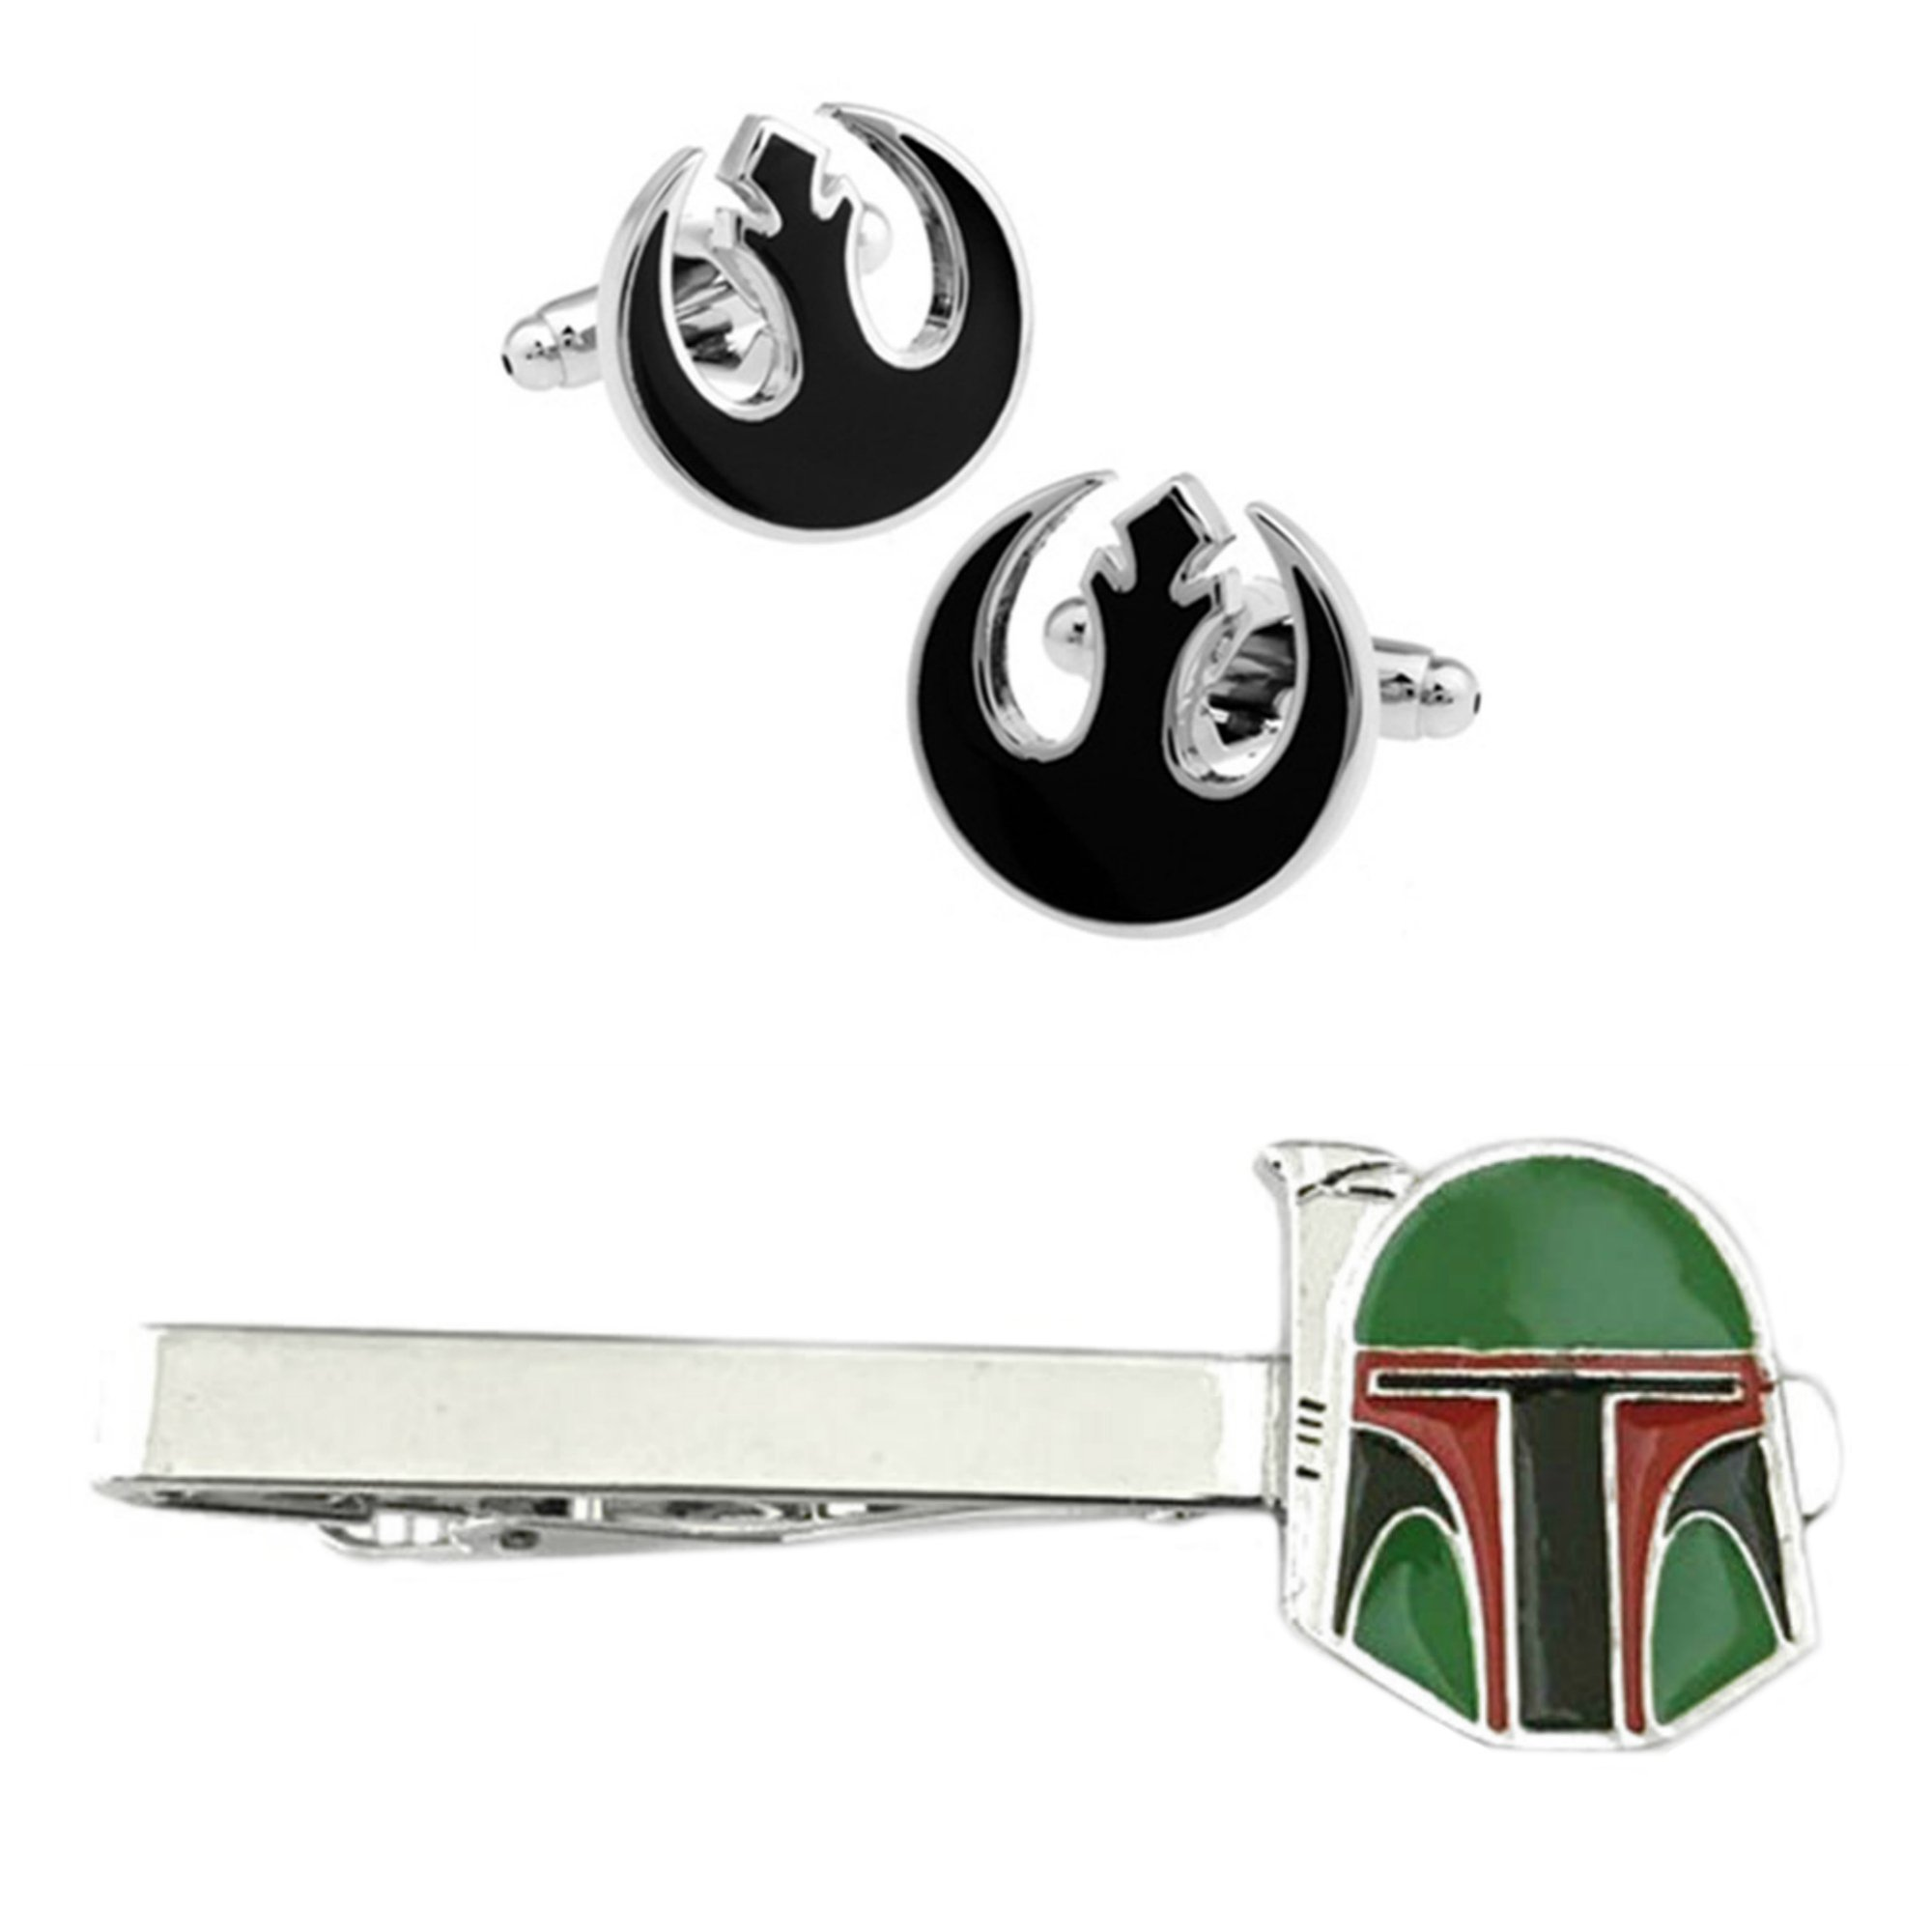 Outlander Rebel Black Cufflink & Boba Fett Tiebar - New 2018 Star Wars Movies - Set of 2 Wedding Logo w/Gift Box